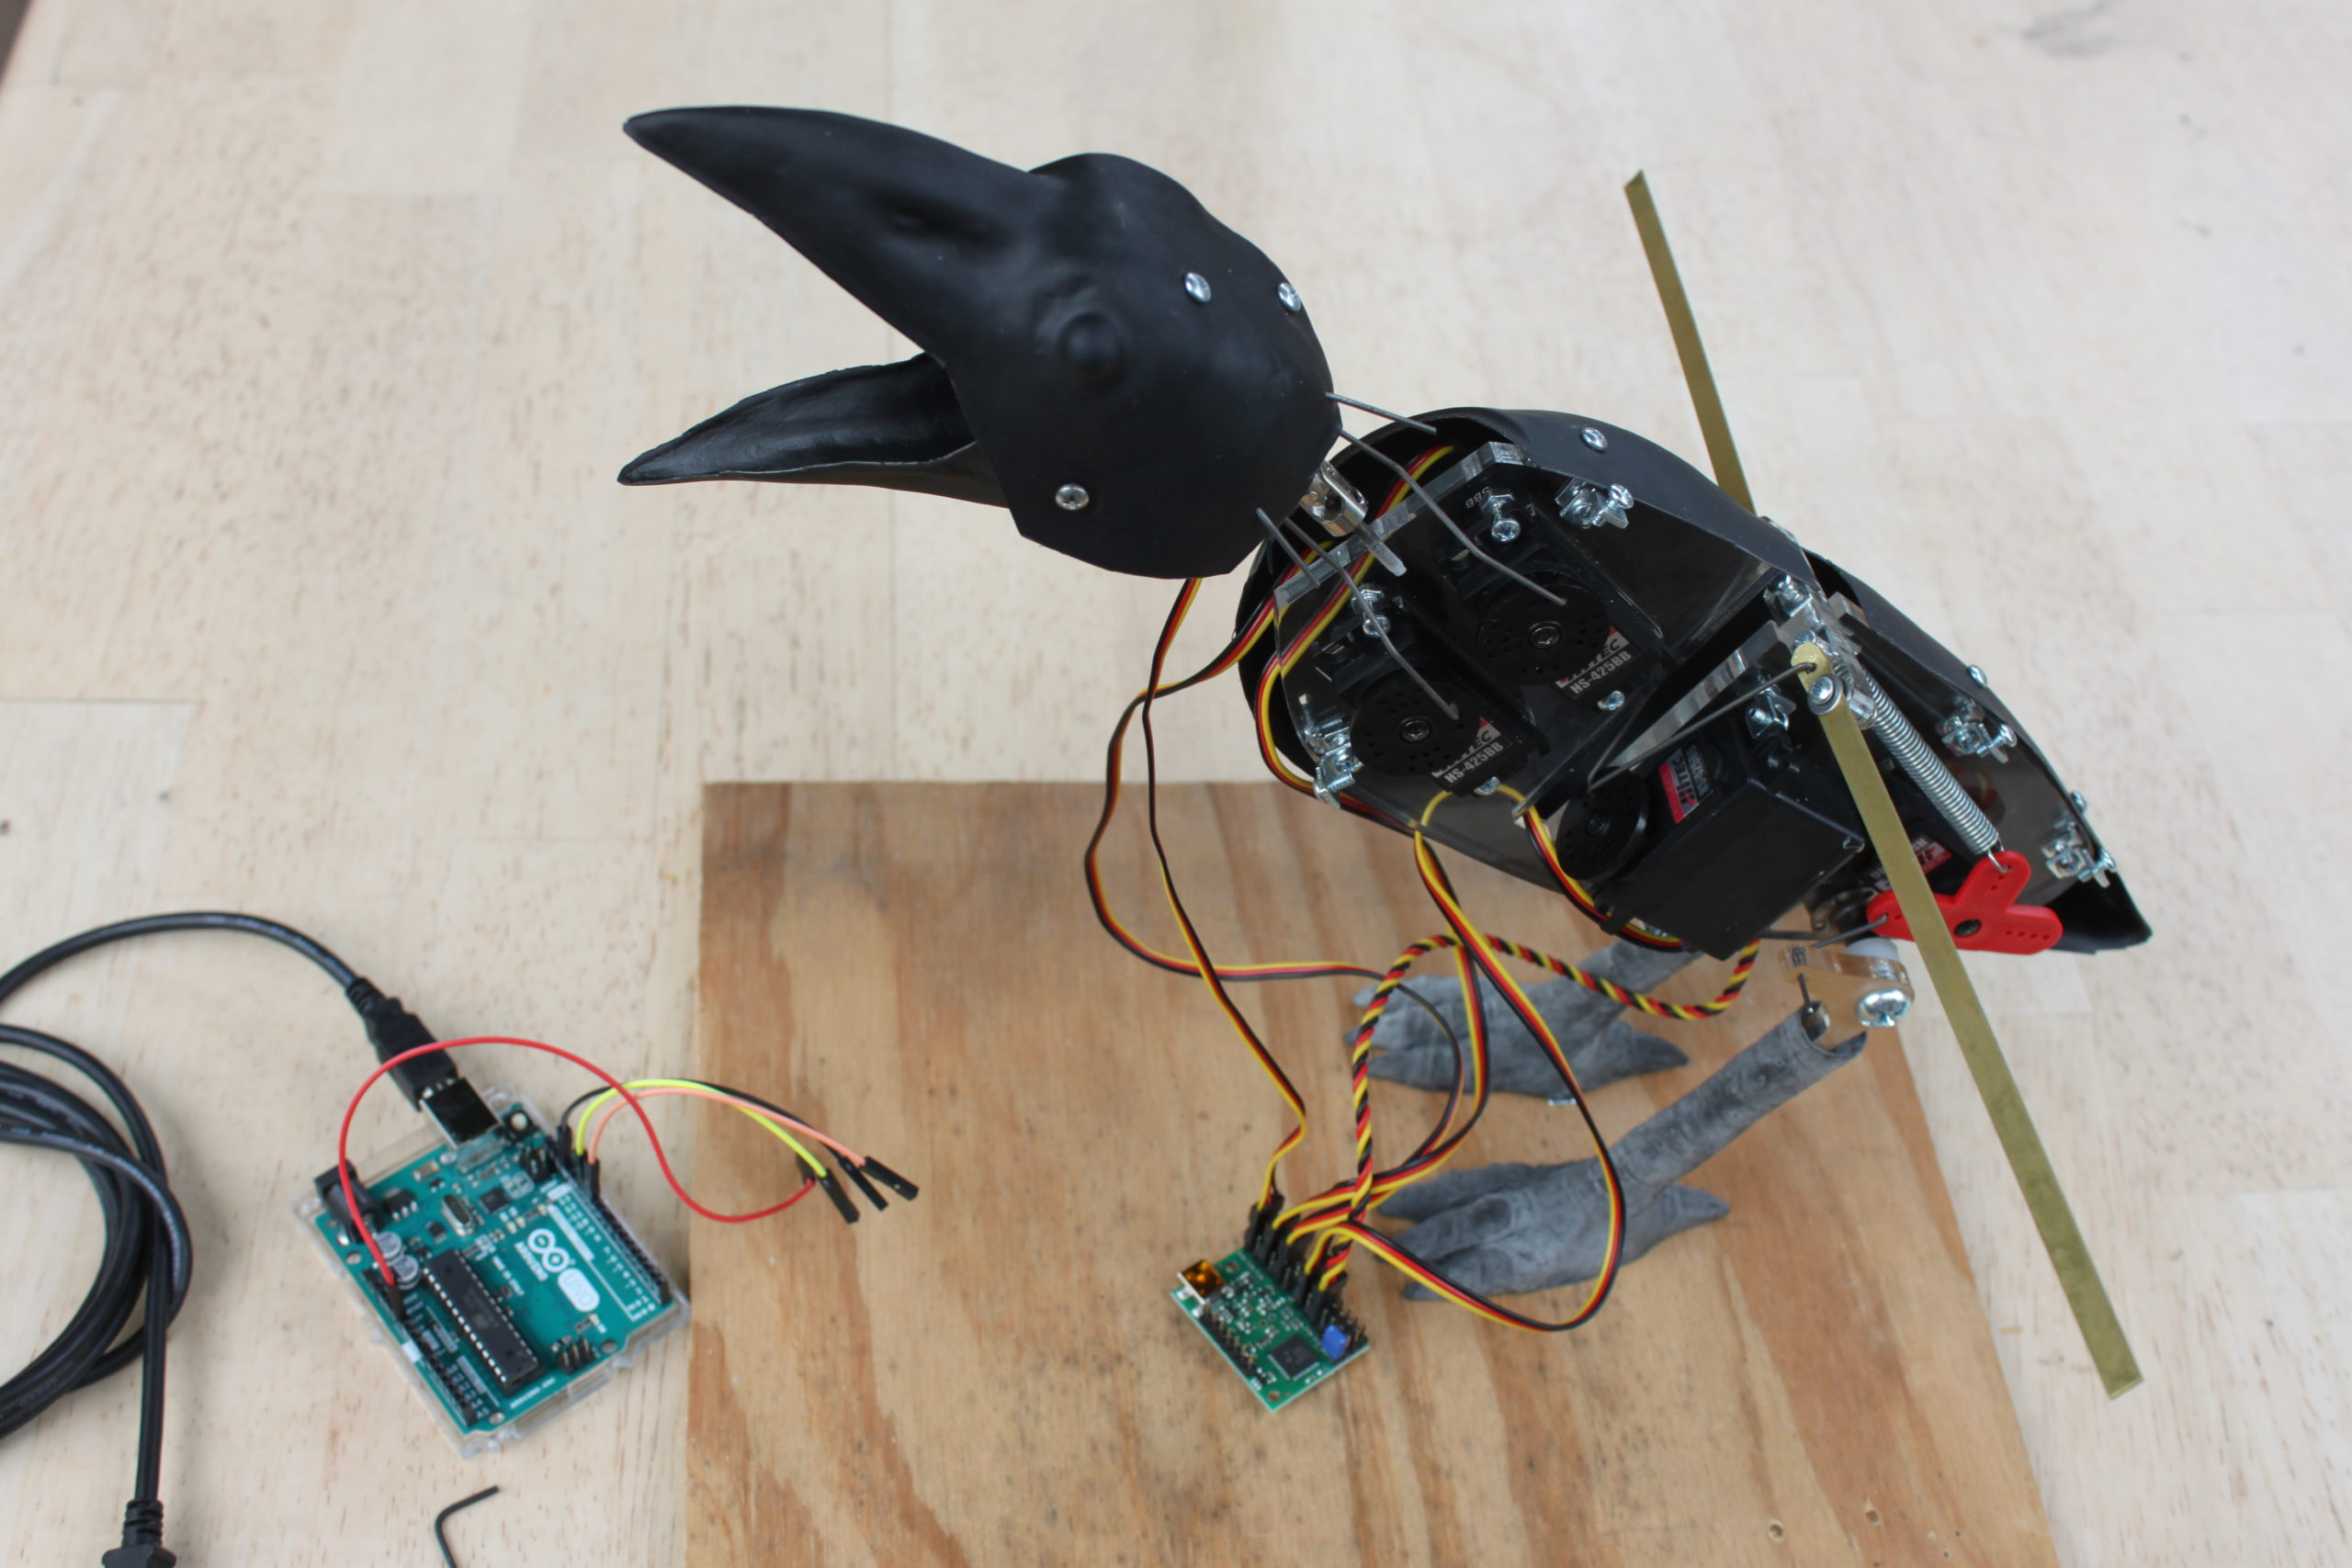 Build an Animatronic Raven Kit